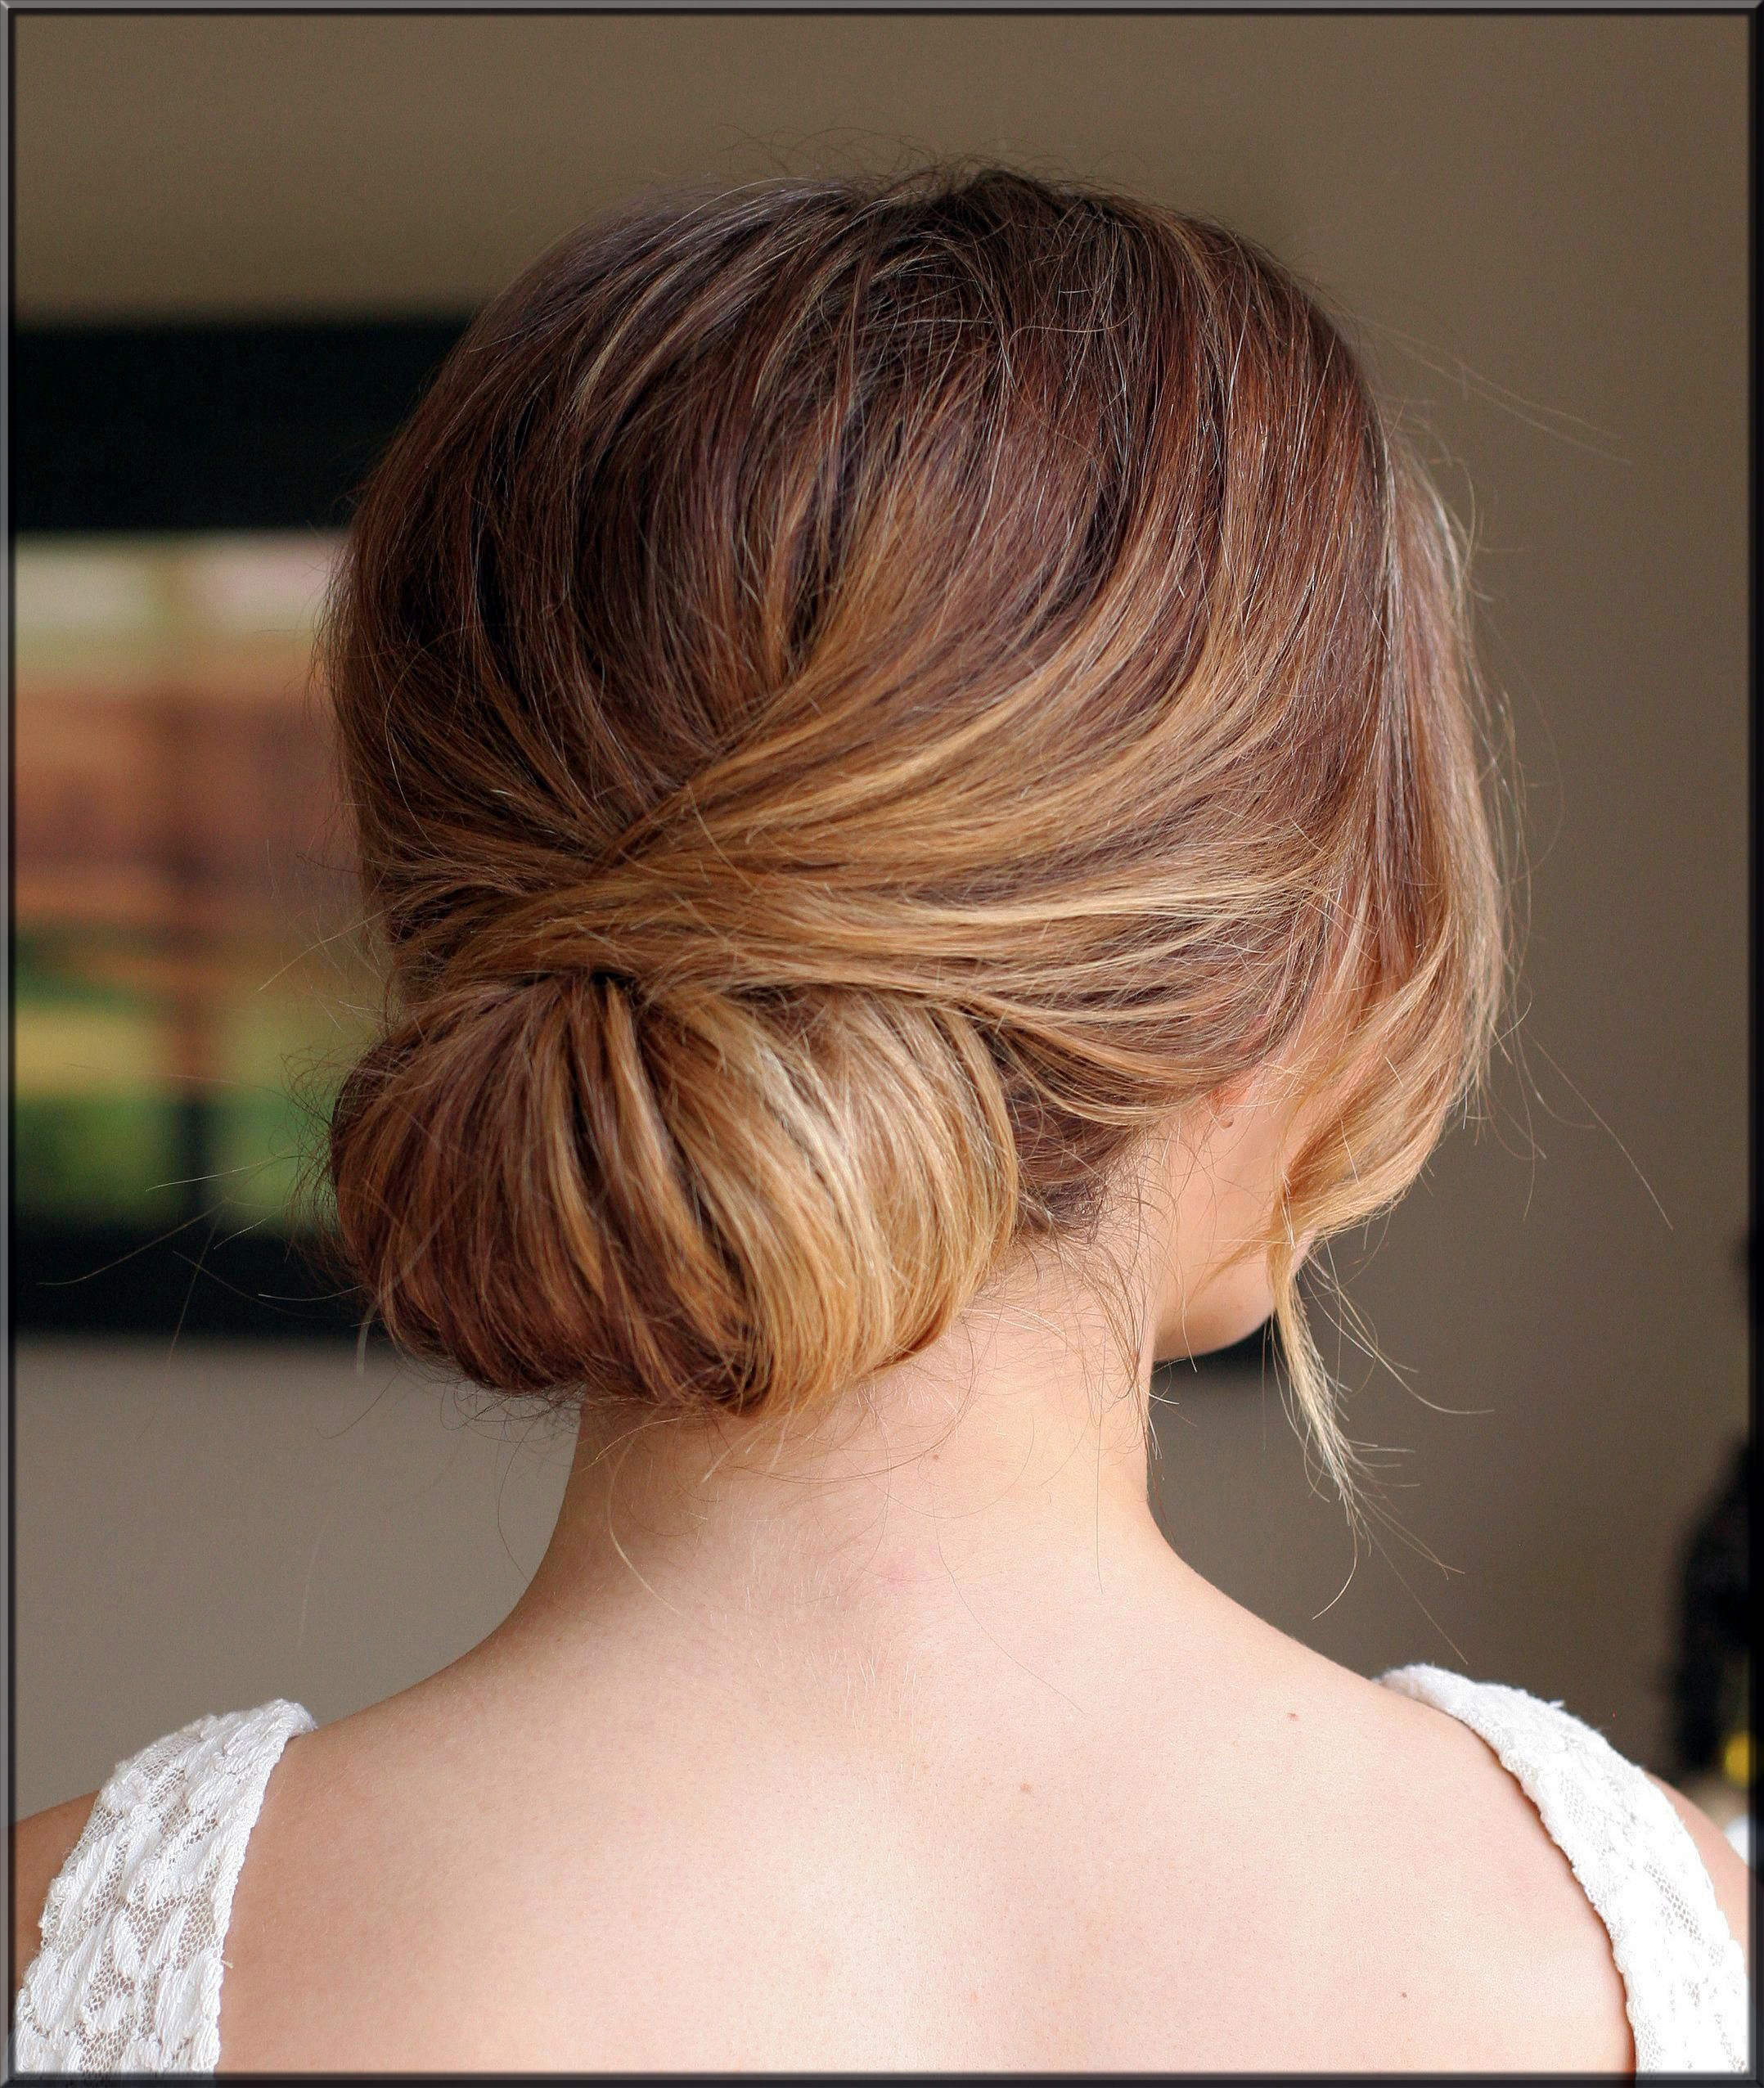 Low Chignon Updo hairstyles for girls